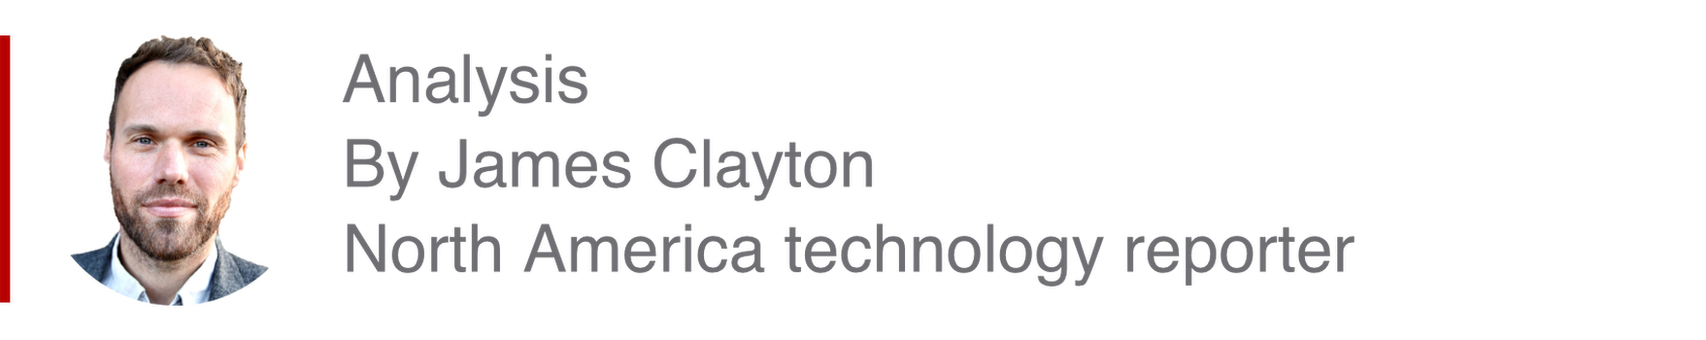 Analysis by James Clayton, North America technology reporter